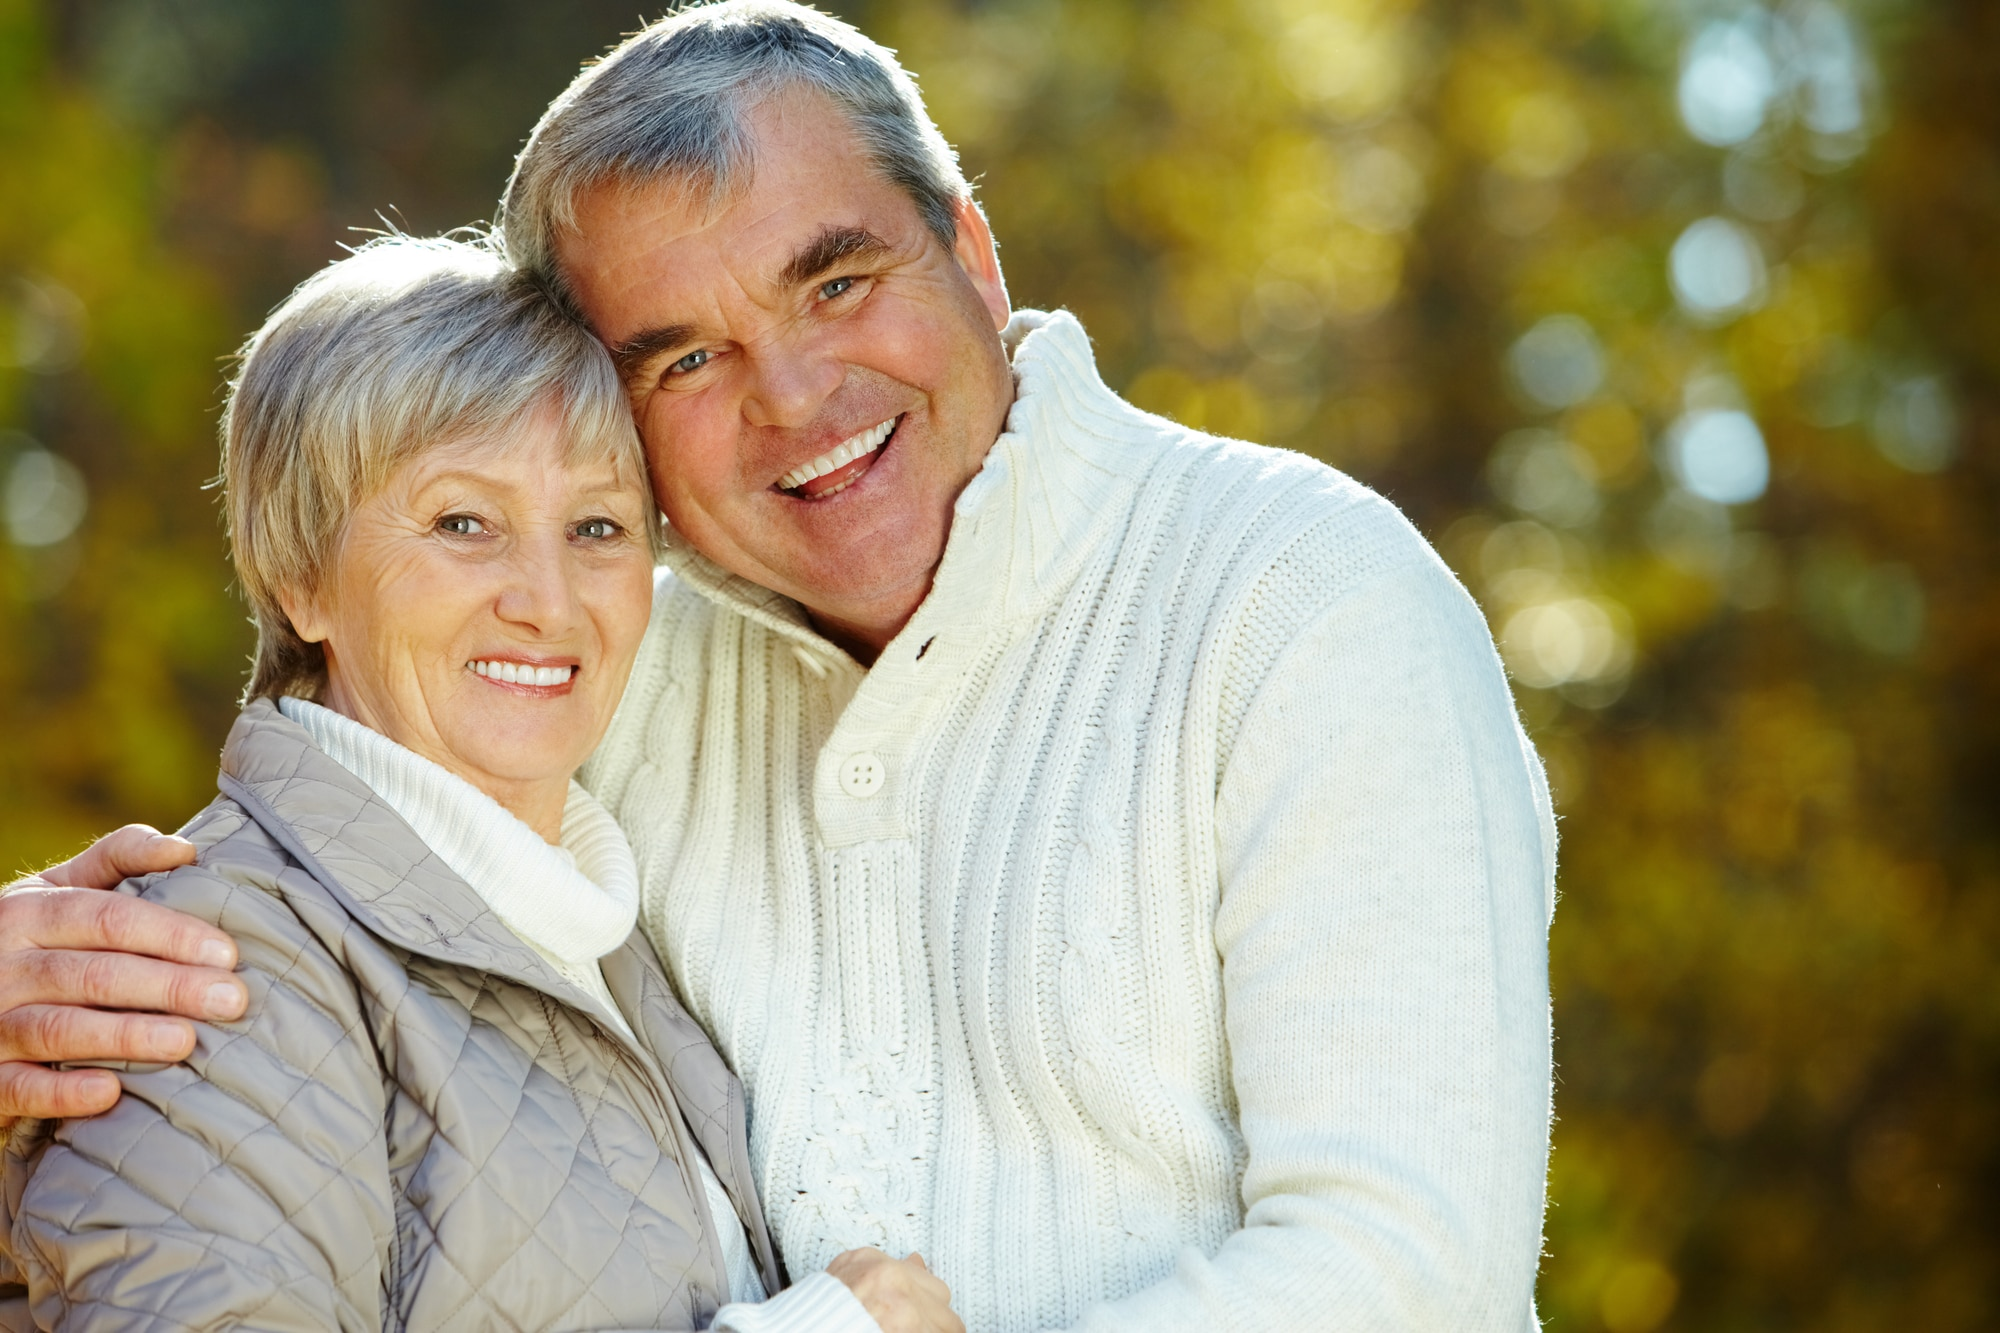 Photo of amorous aged man and woman looking at camera